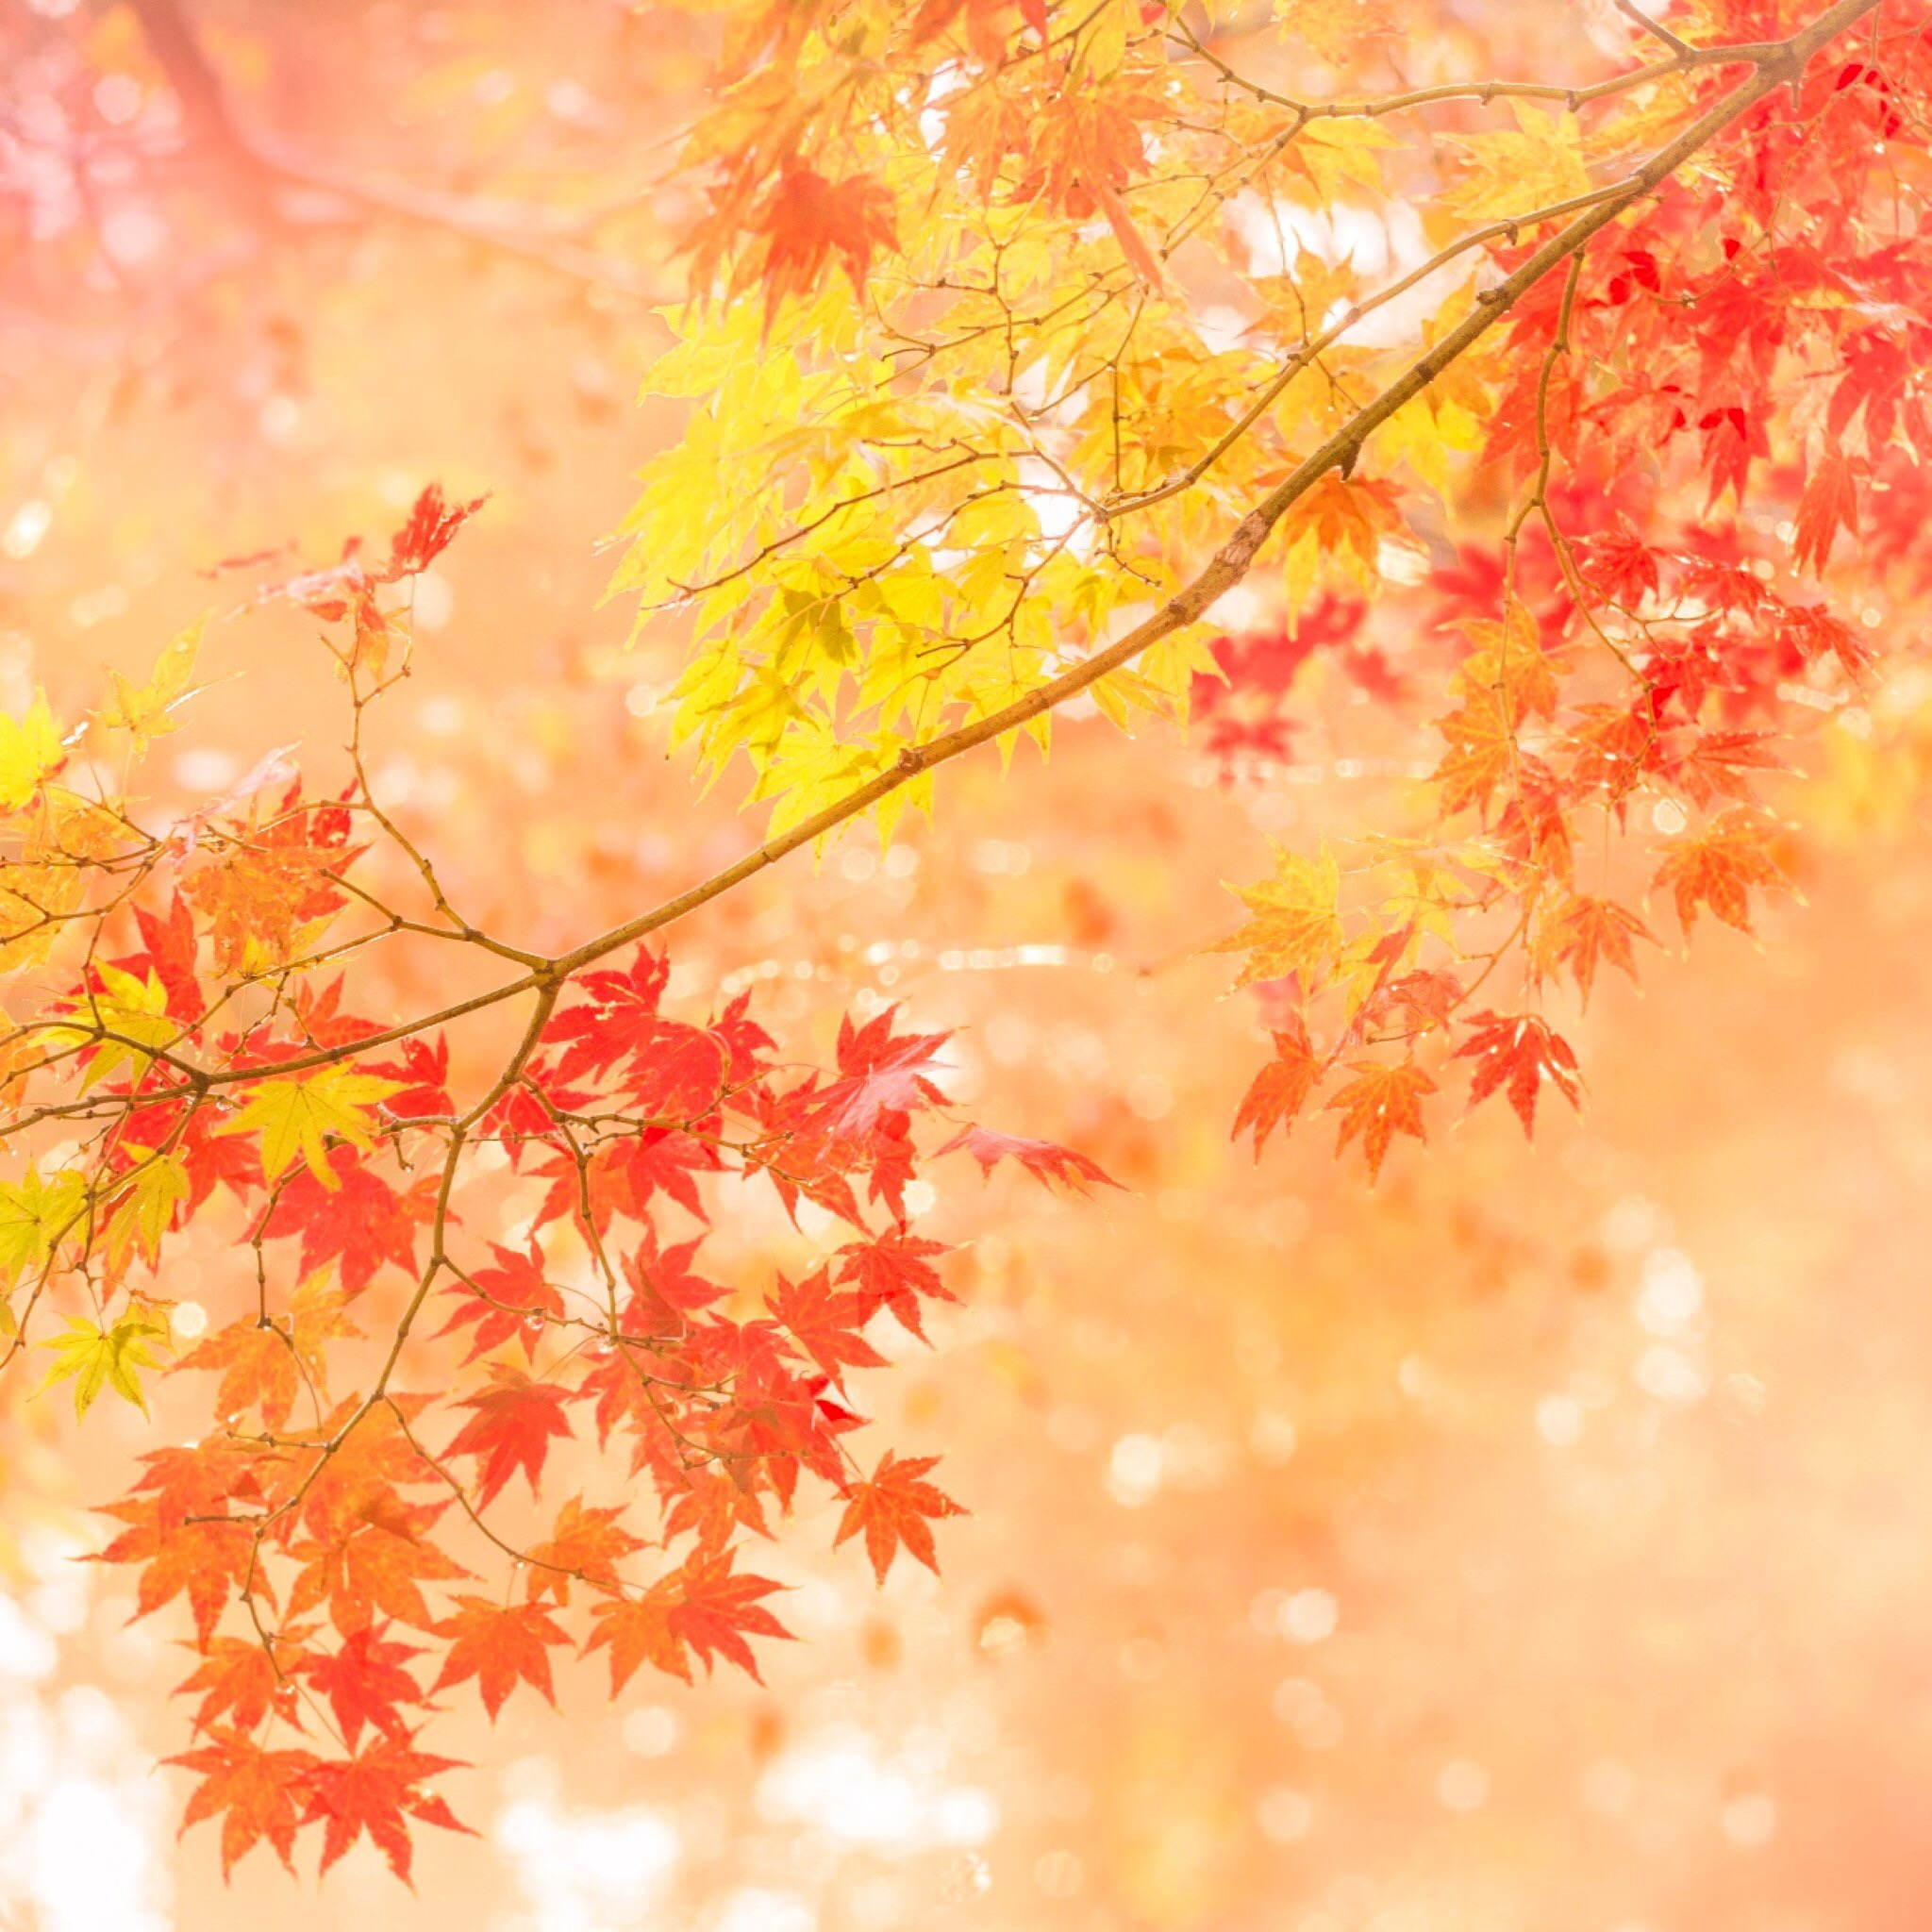 Fall Leaves Watercolor Wallpaper Dossier Applications Iphone Et Ipad L Automne En Photo